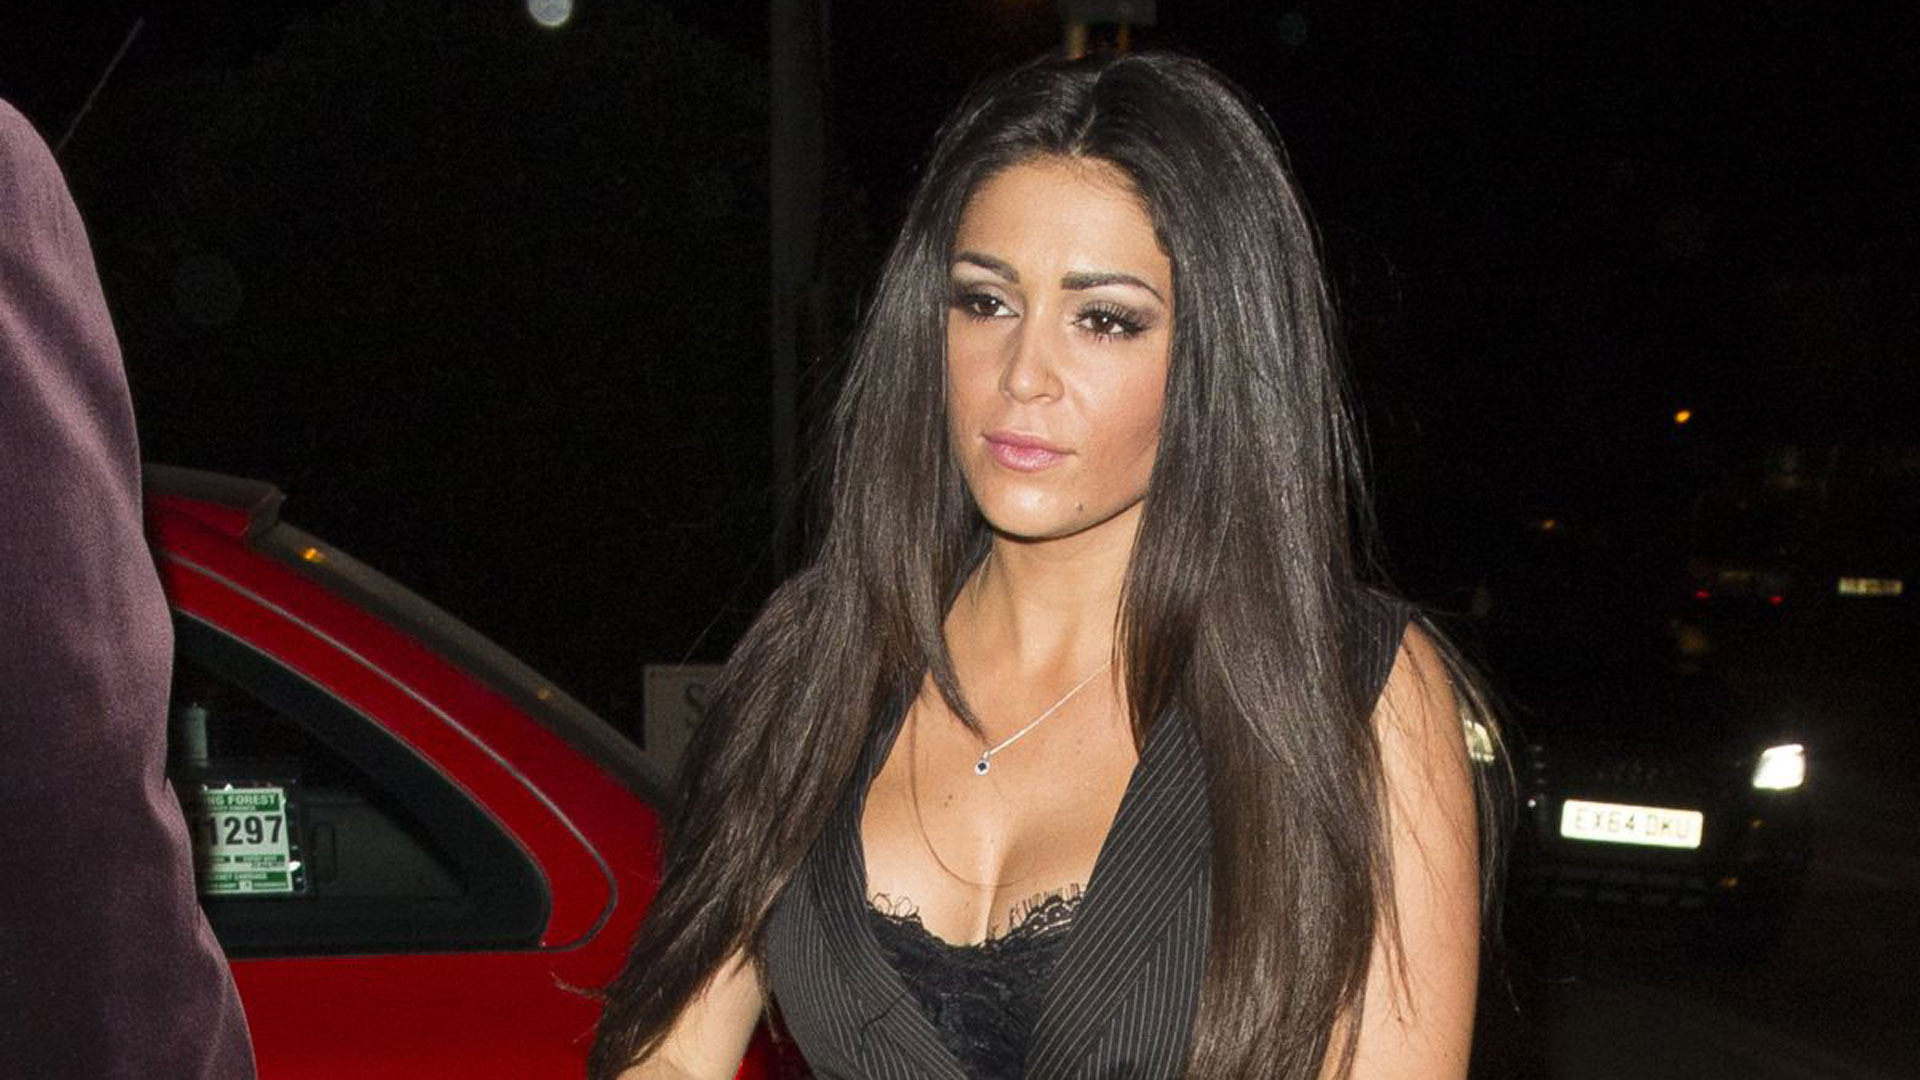 Casey Batchelor Wallpaper